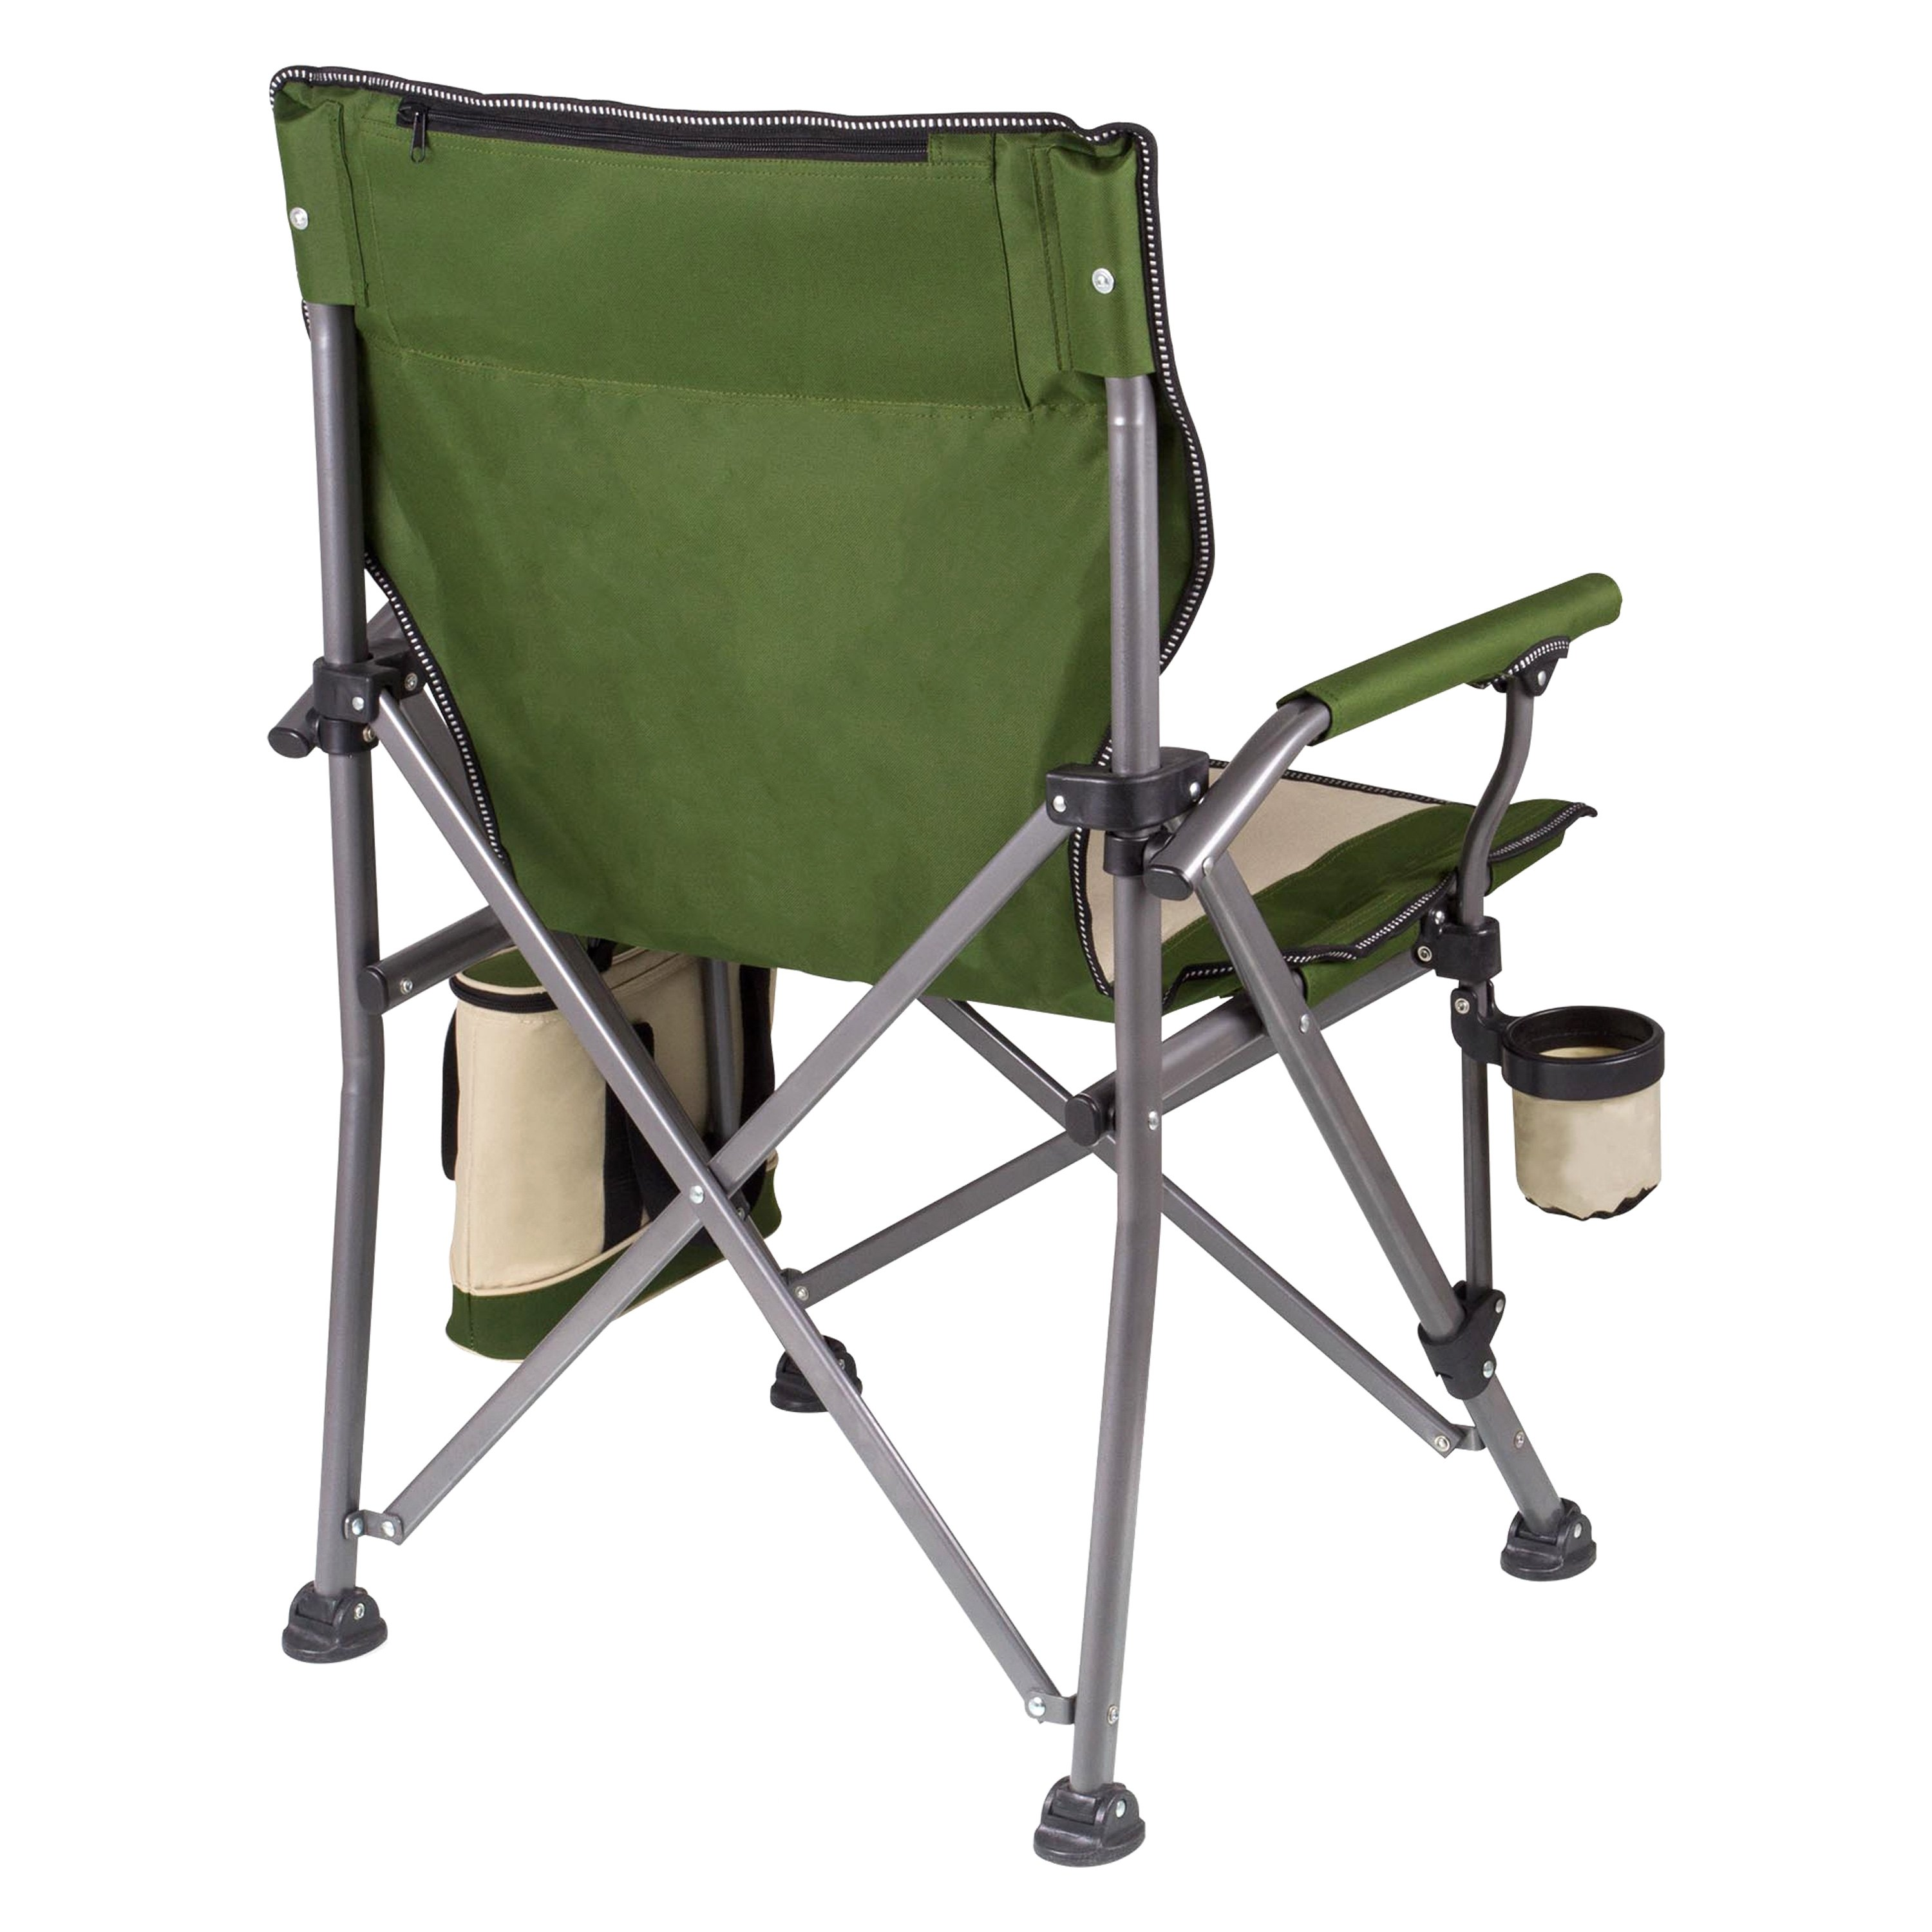 picnic time chair parts kitchen cushions with ties target 800 00 140 000 outlander khaki camp